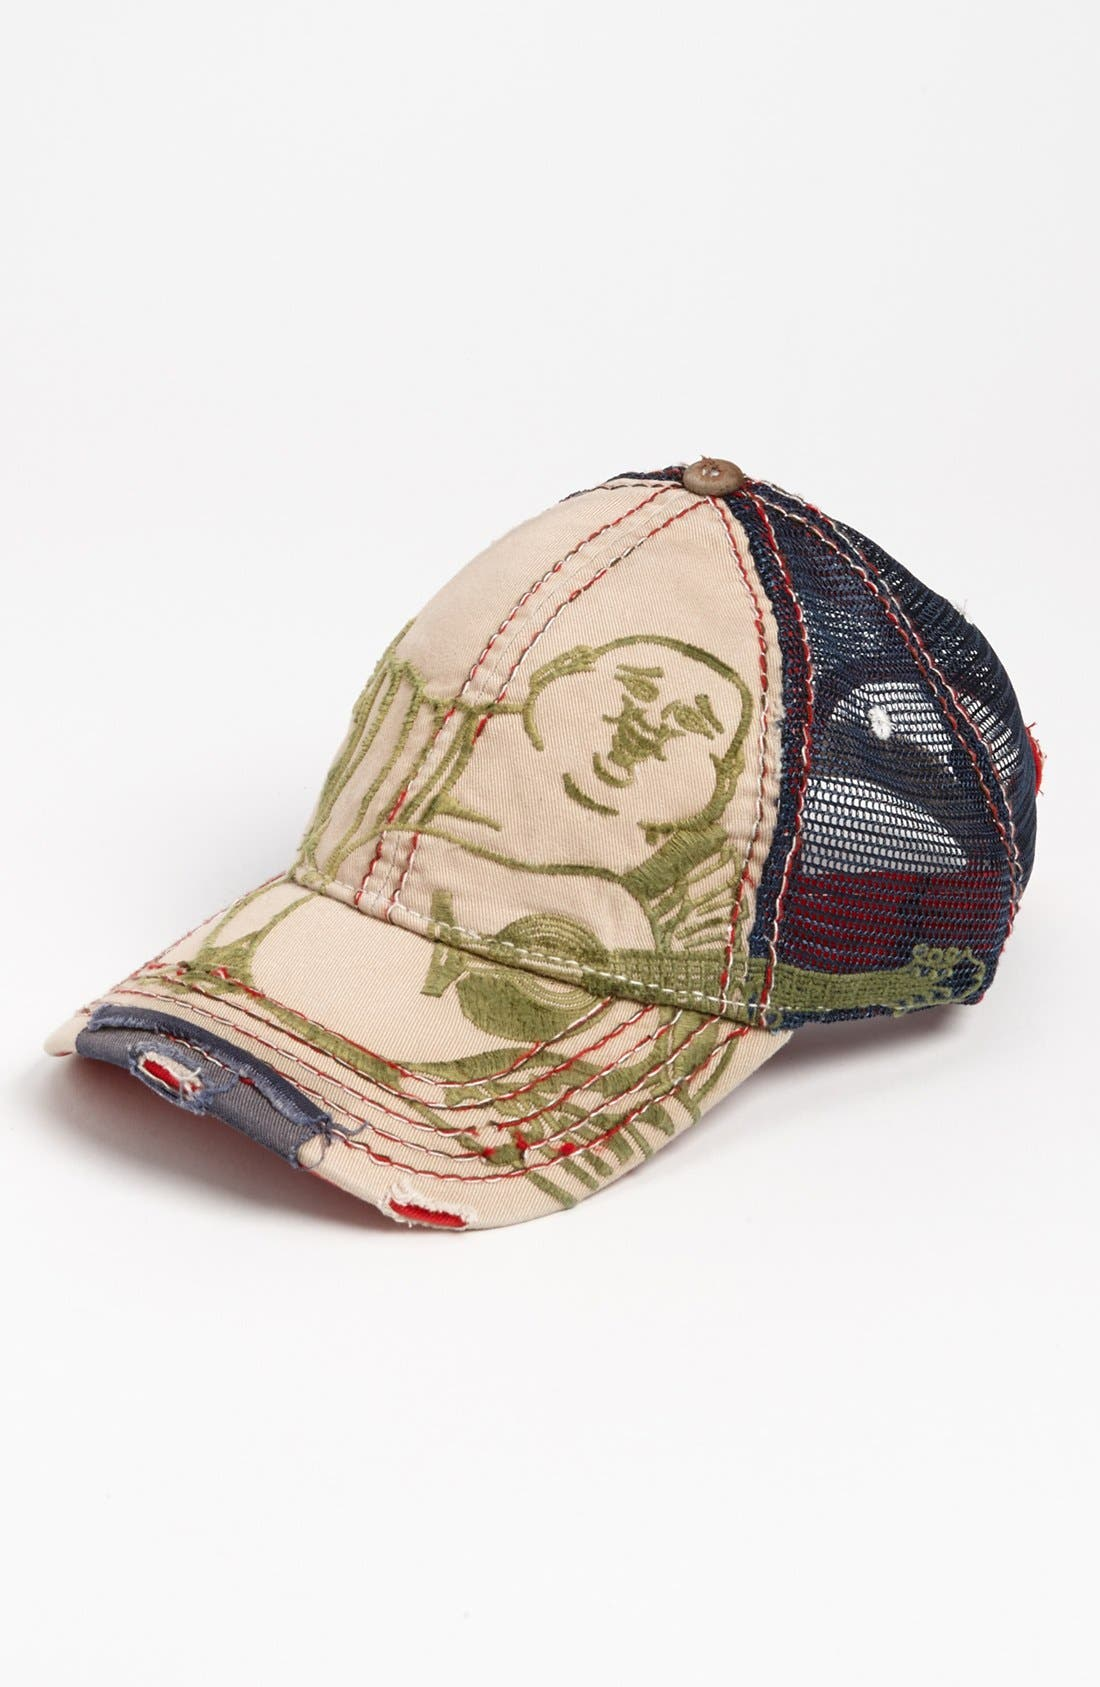 Alternate Image 1 Selected - True Religion Brand Jeans 'Giant Buddha' Trucker Hat